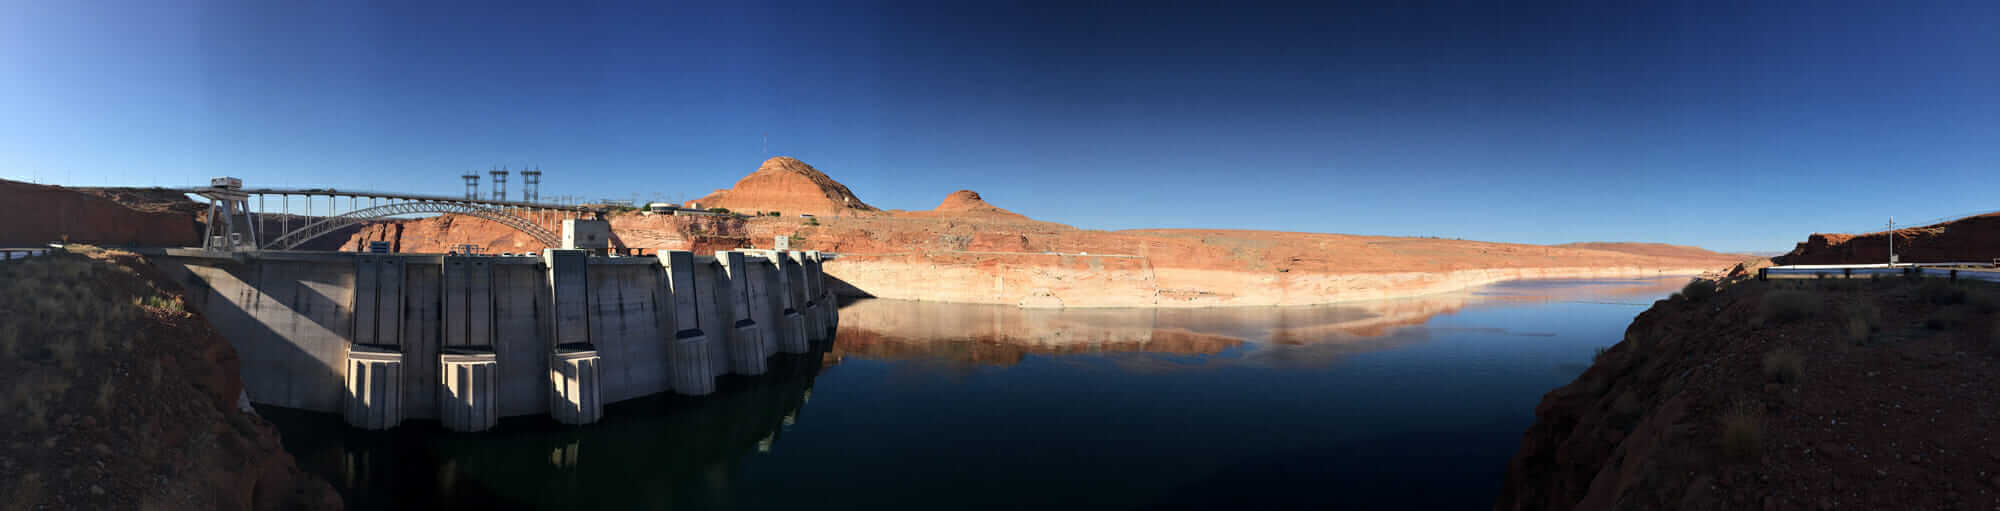 critical infrastructure protection iPhone panorama of the Lake Powell side of glen canyon dam